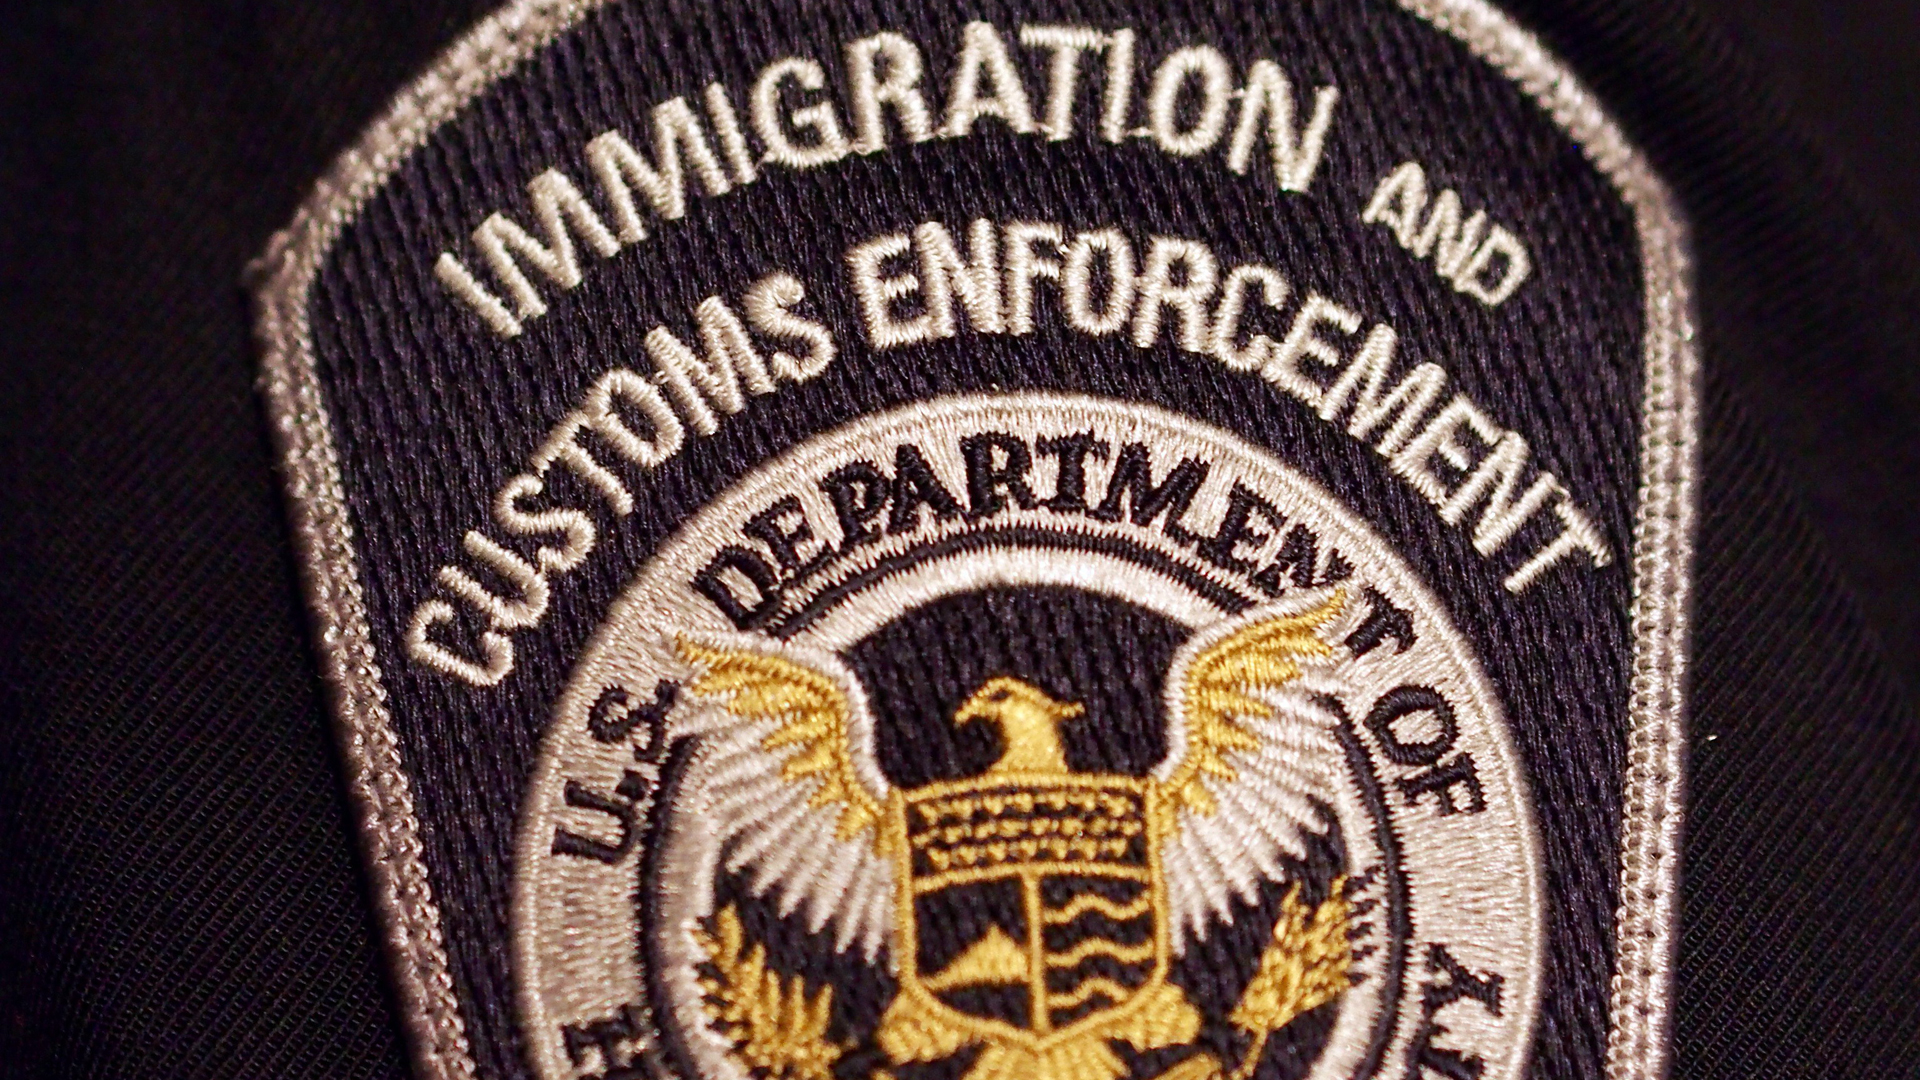 A U.S. Immigration and Customs Enforcement badge is seen in a file photo. (Credit: Robert MacPherson / AFP / Getty Images)